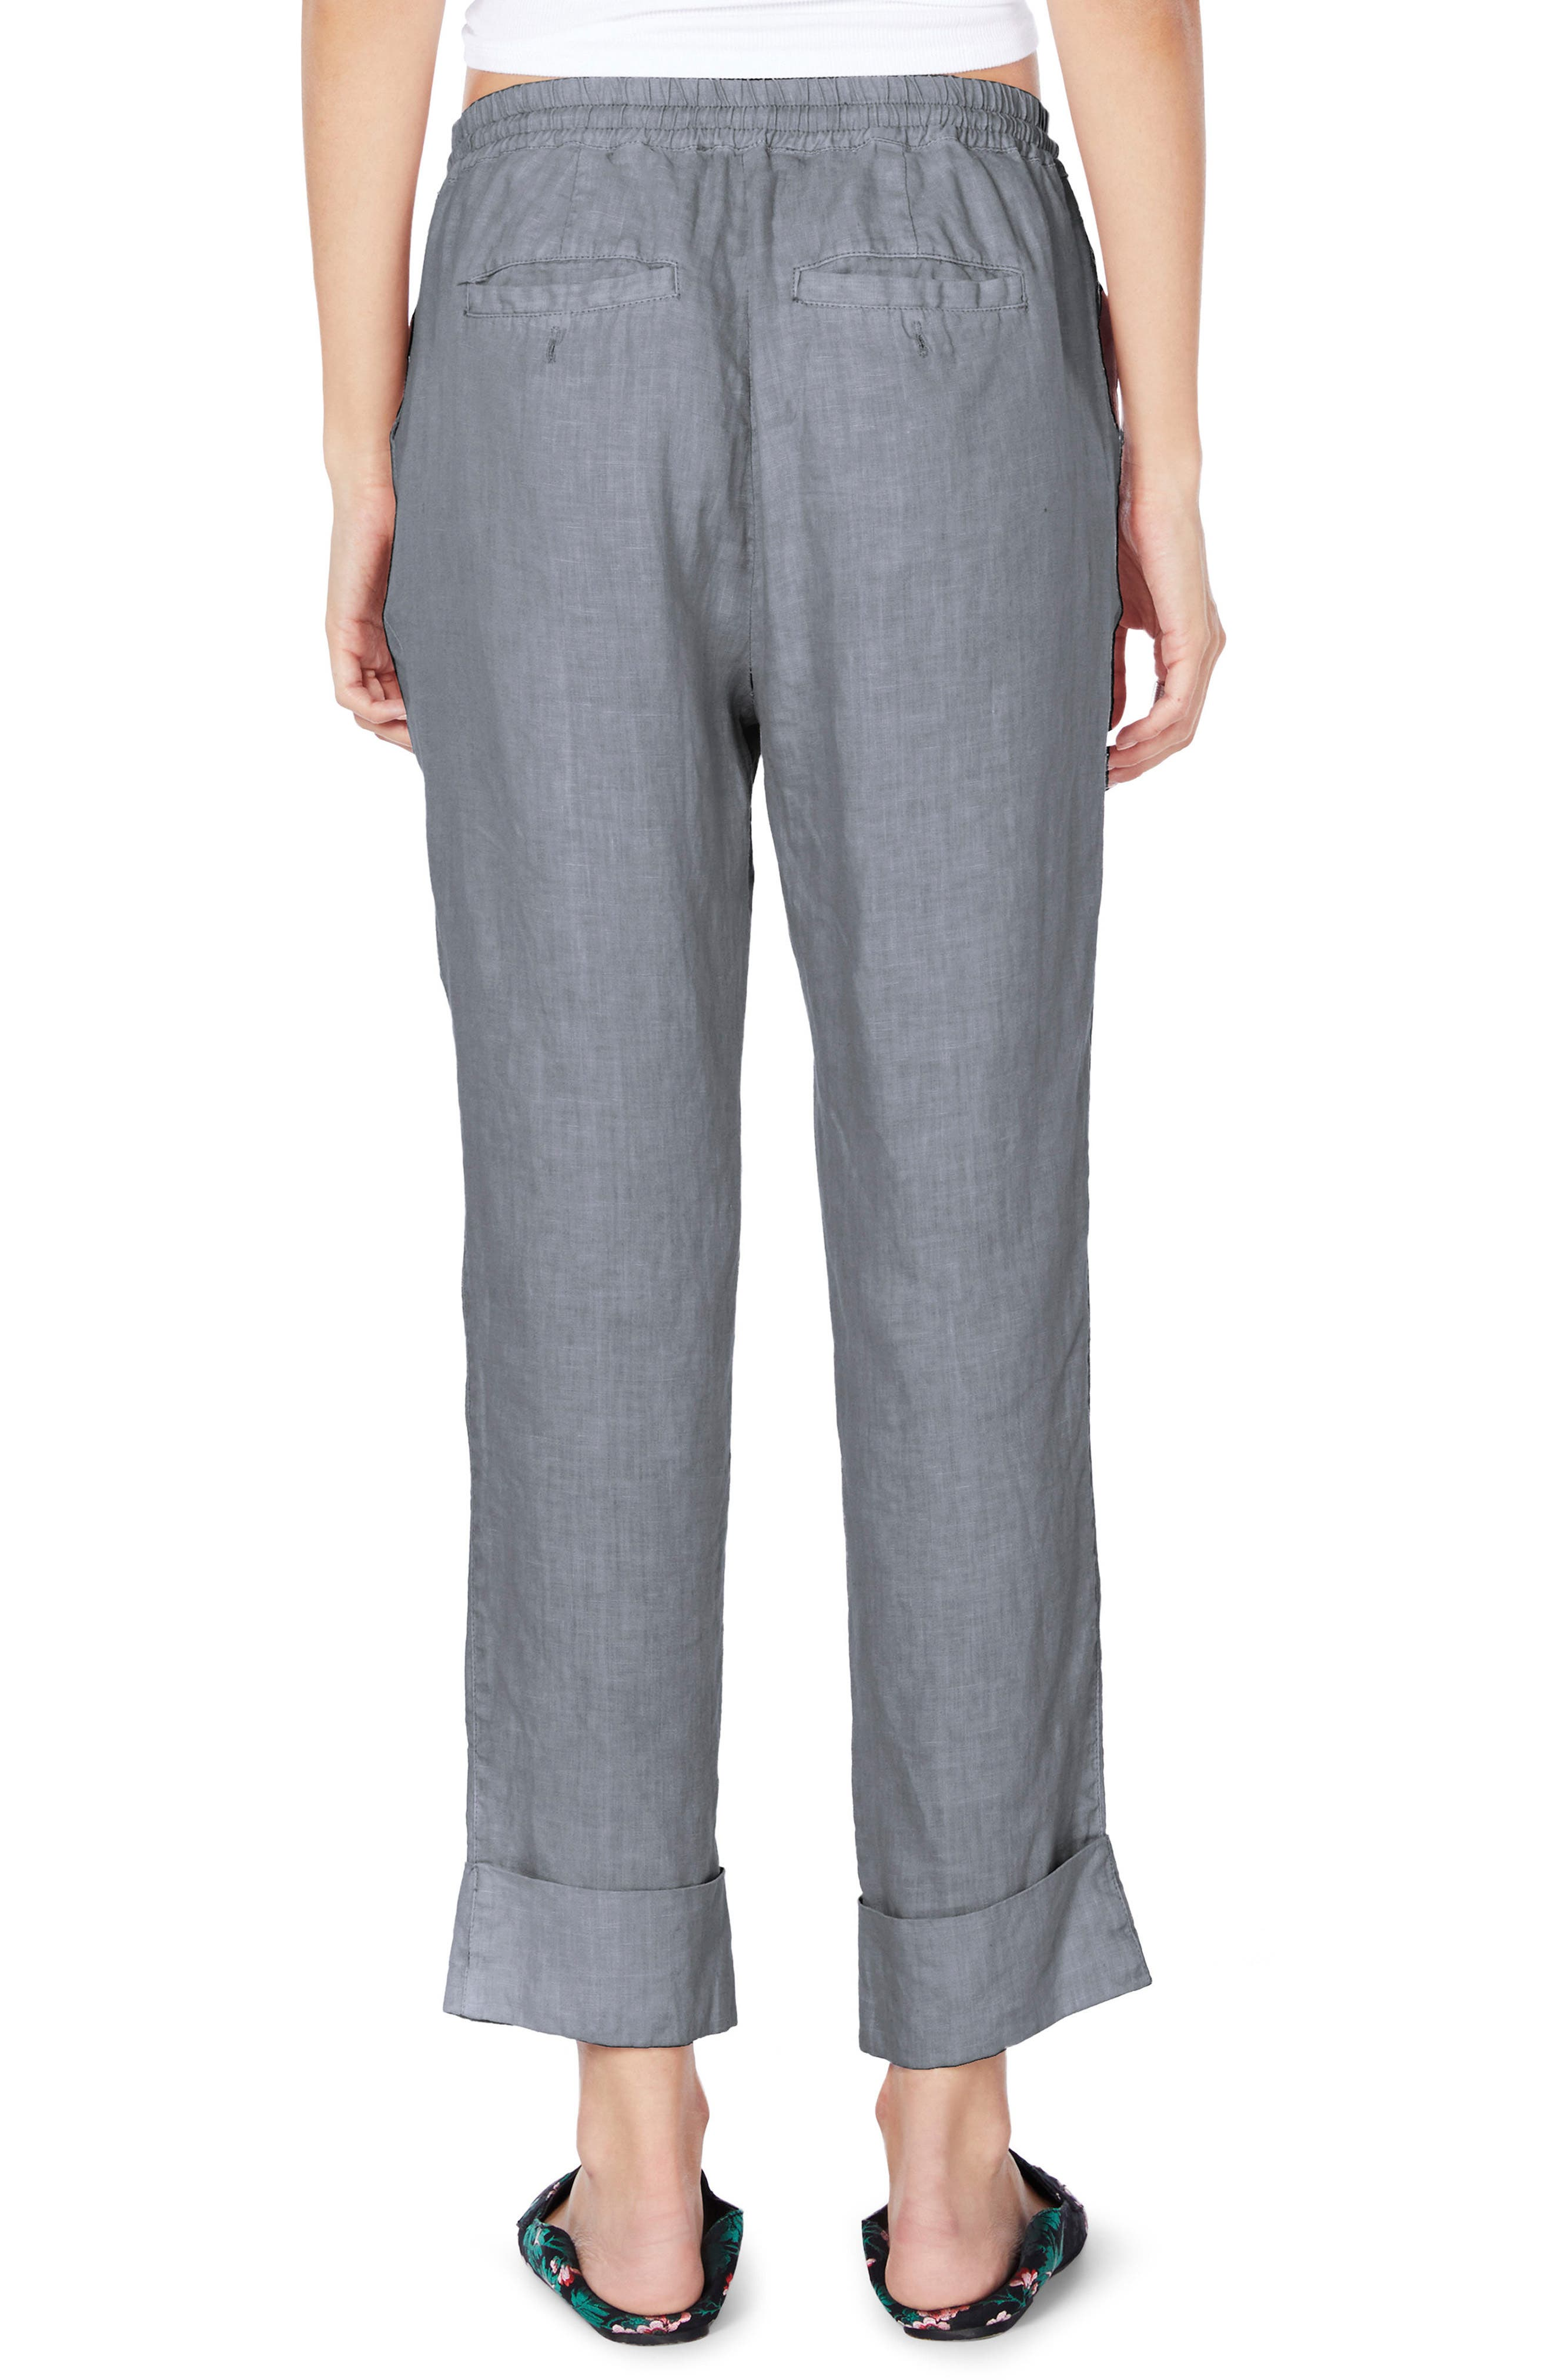 Cuffed Linen Pants,                             Alternate thumbnail 2, color,                             Galvanized